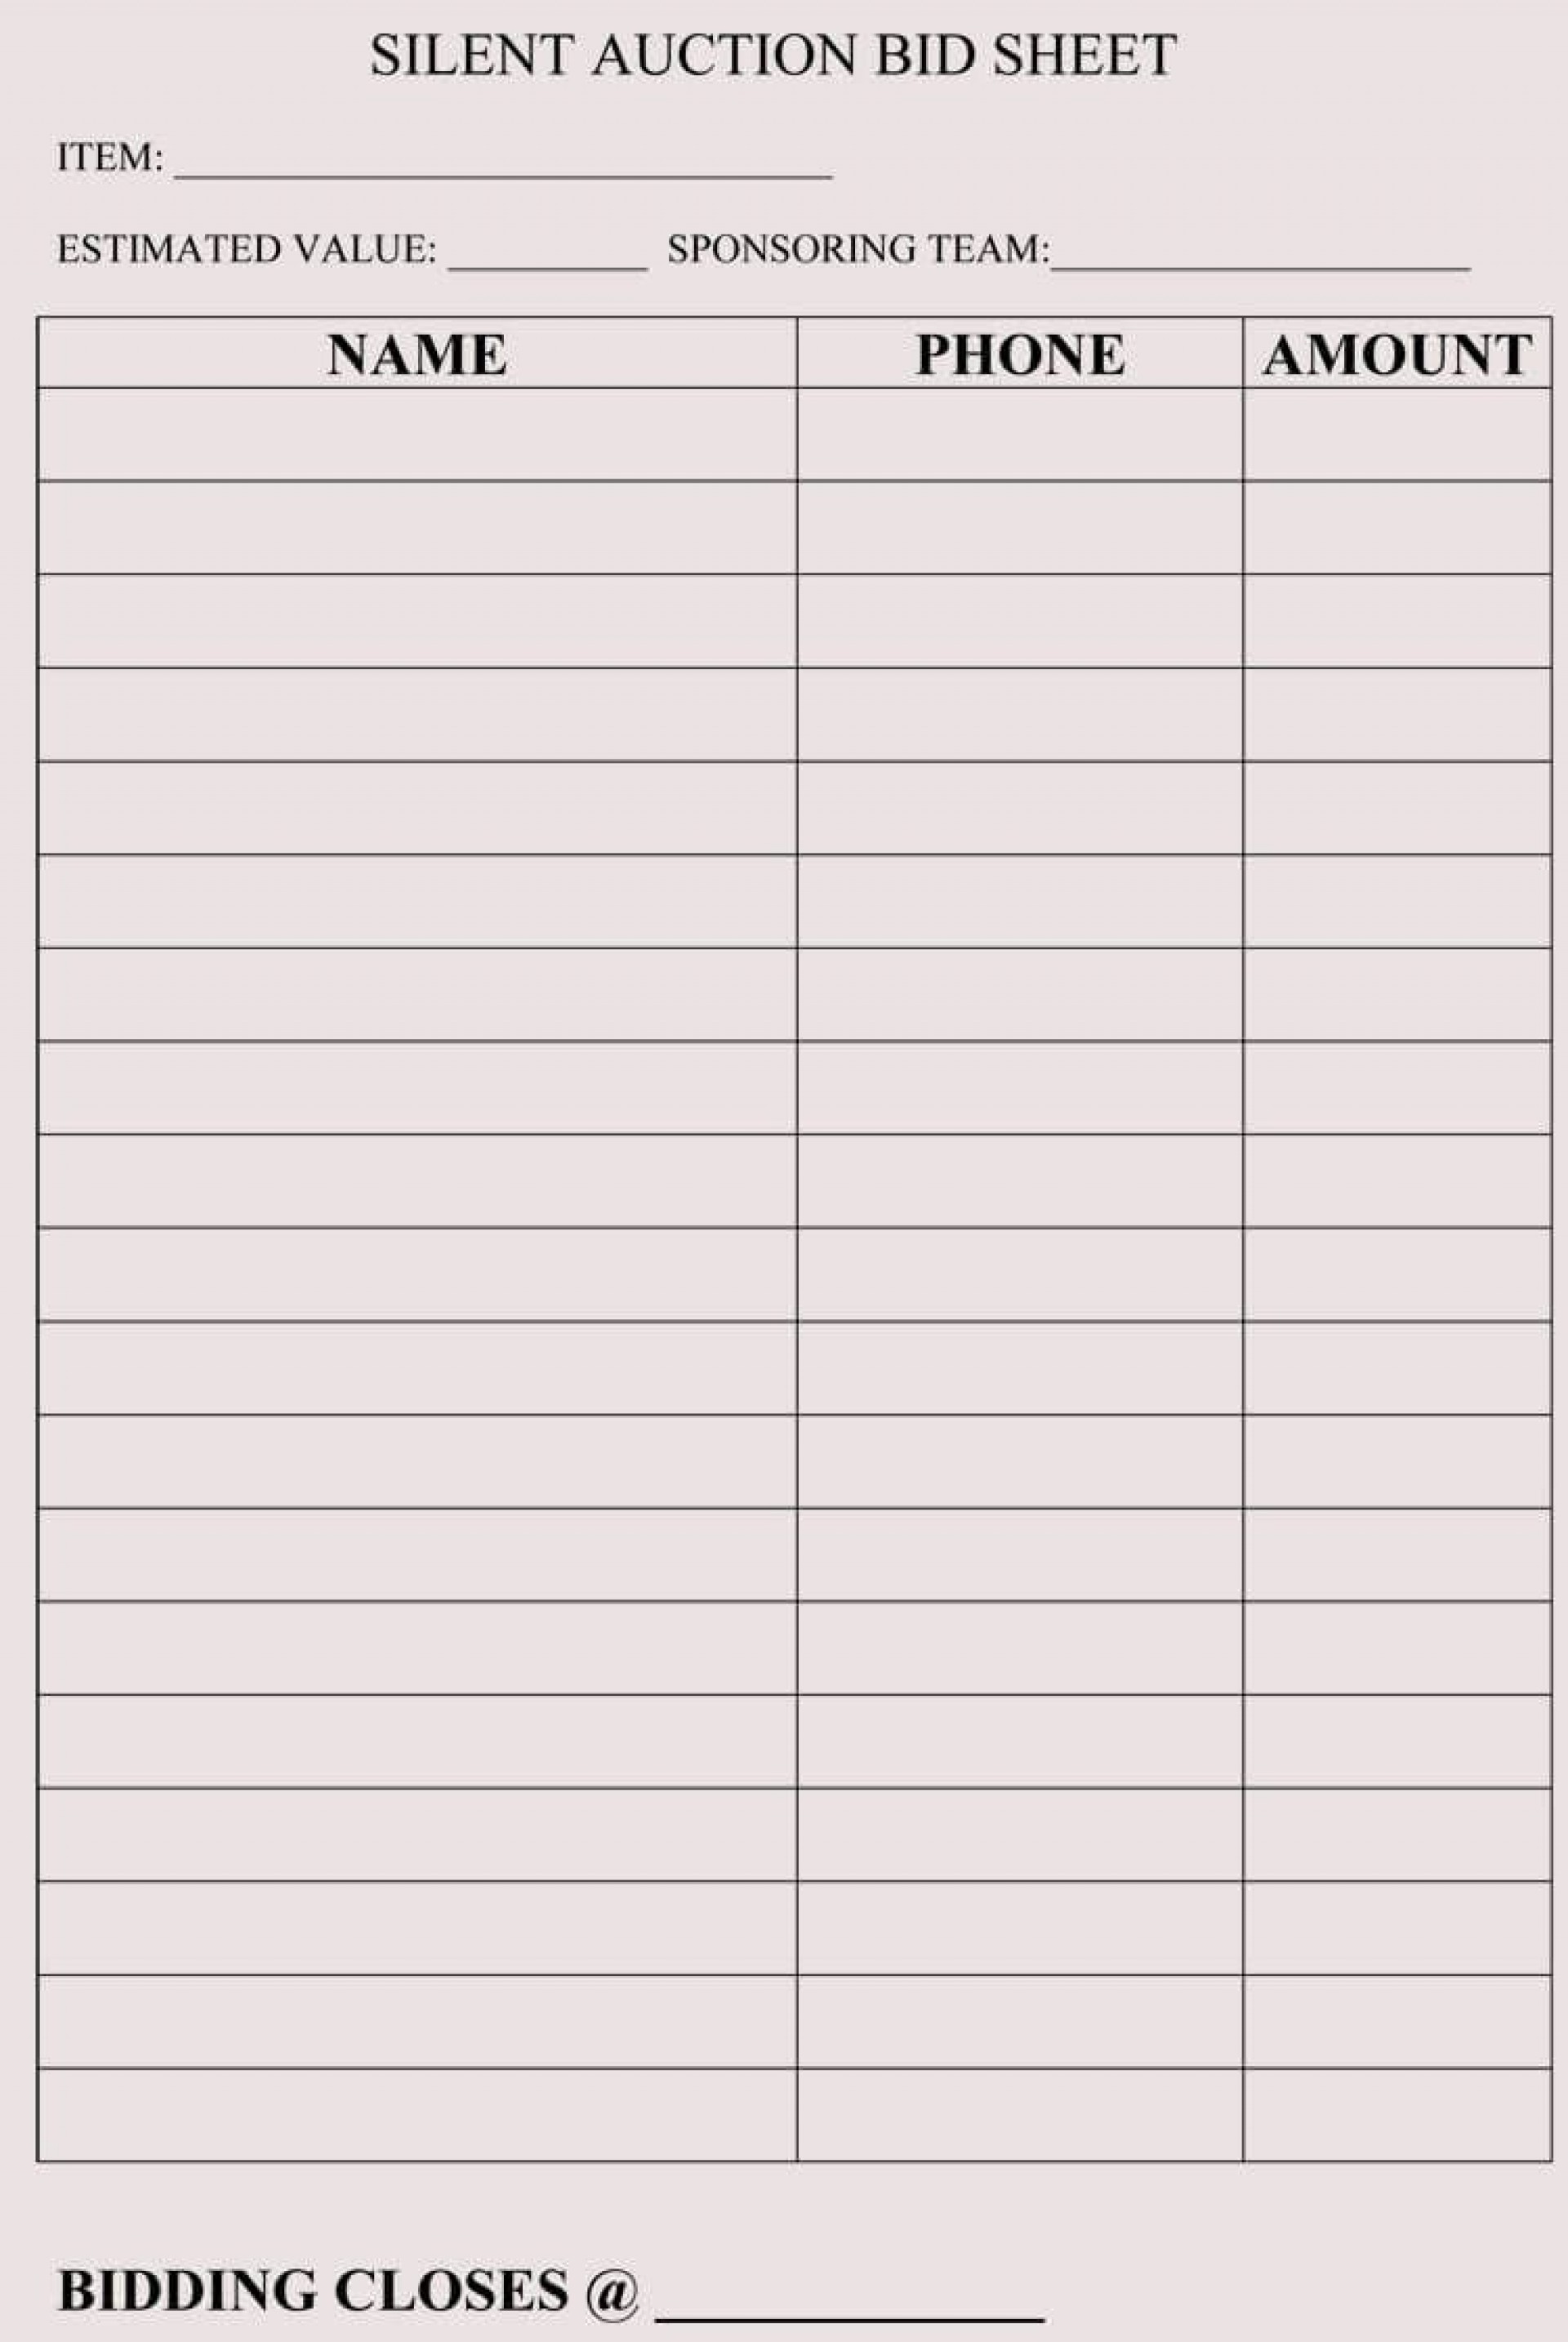 009 Fearsome Sample Silent Auction Bid Sheet Free Example  Printable Template Download1920